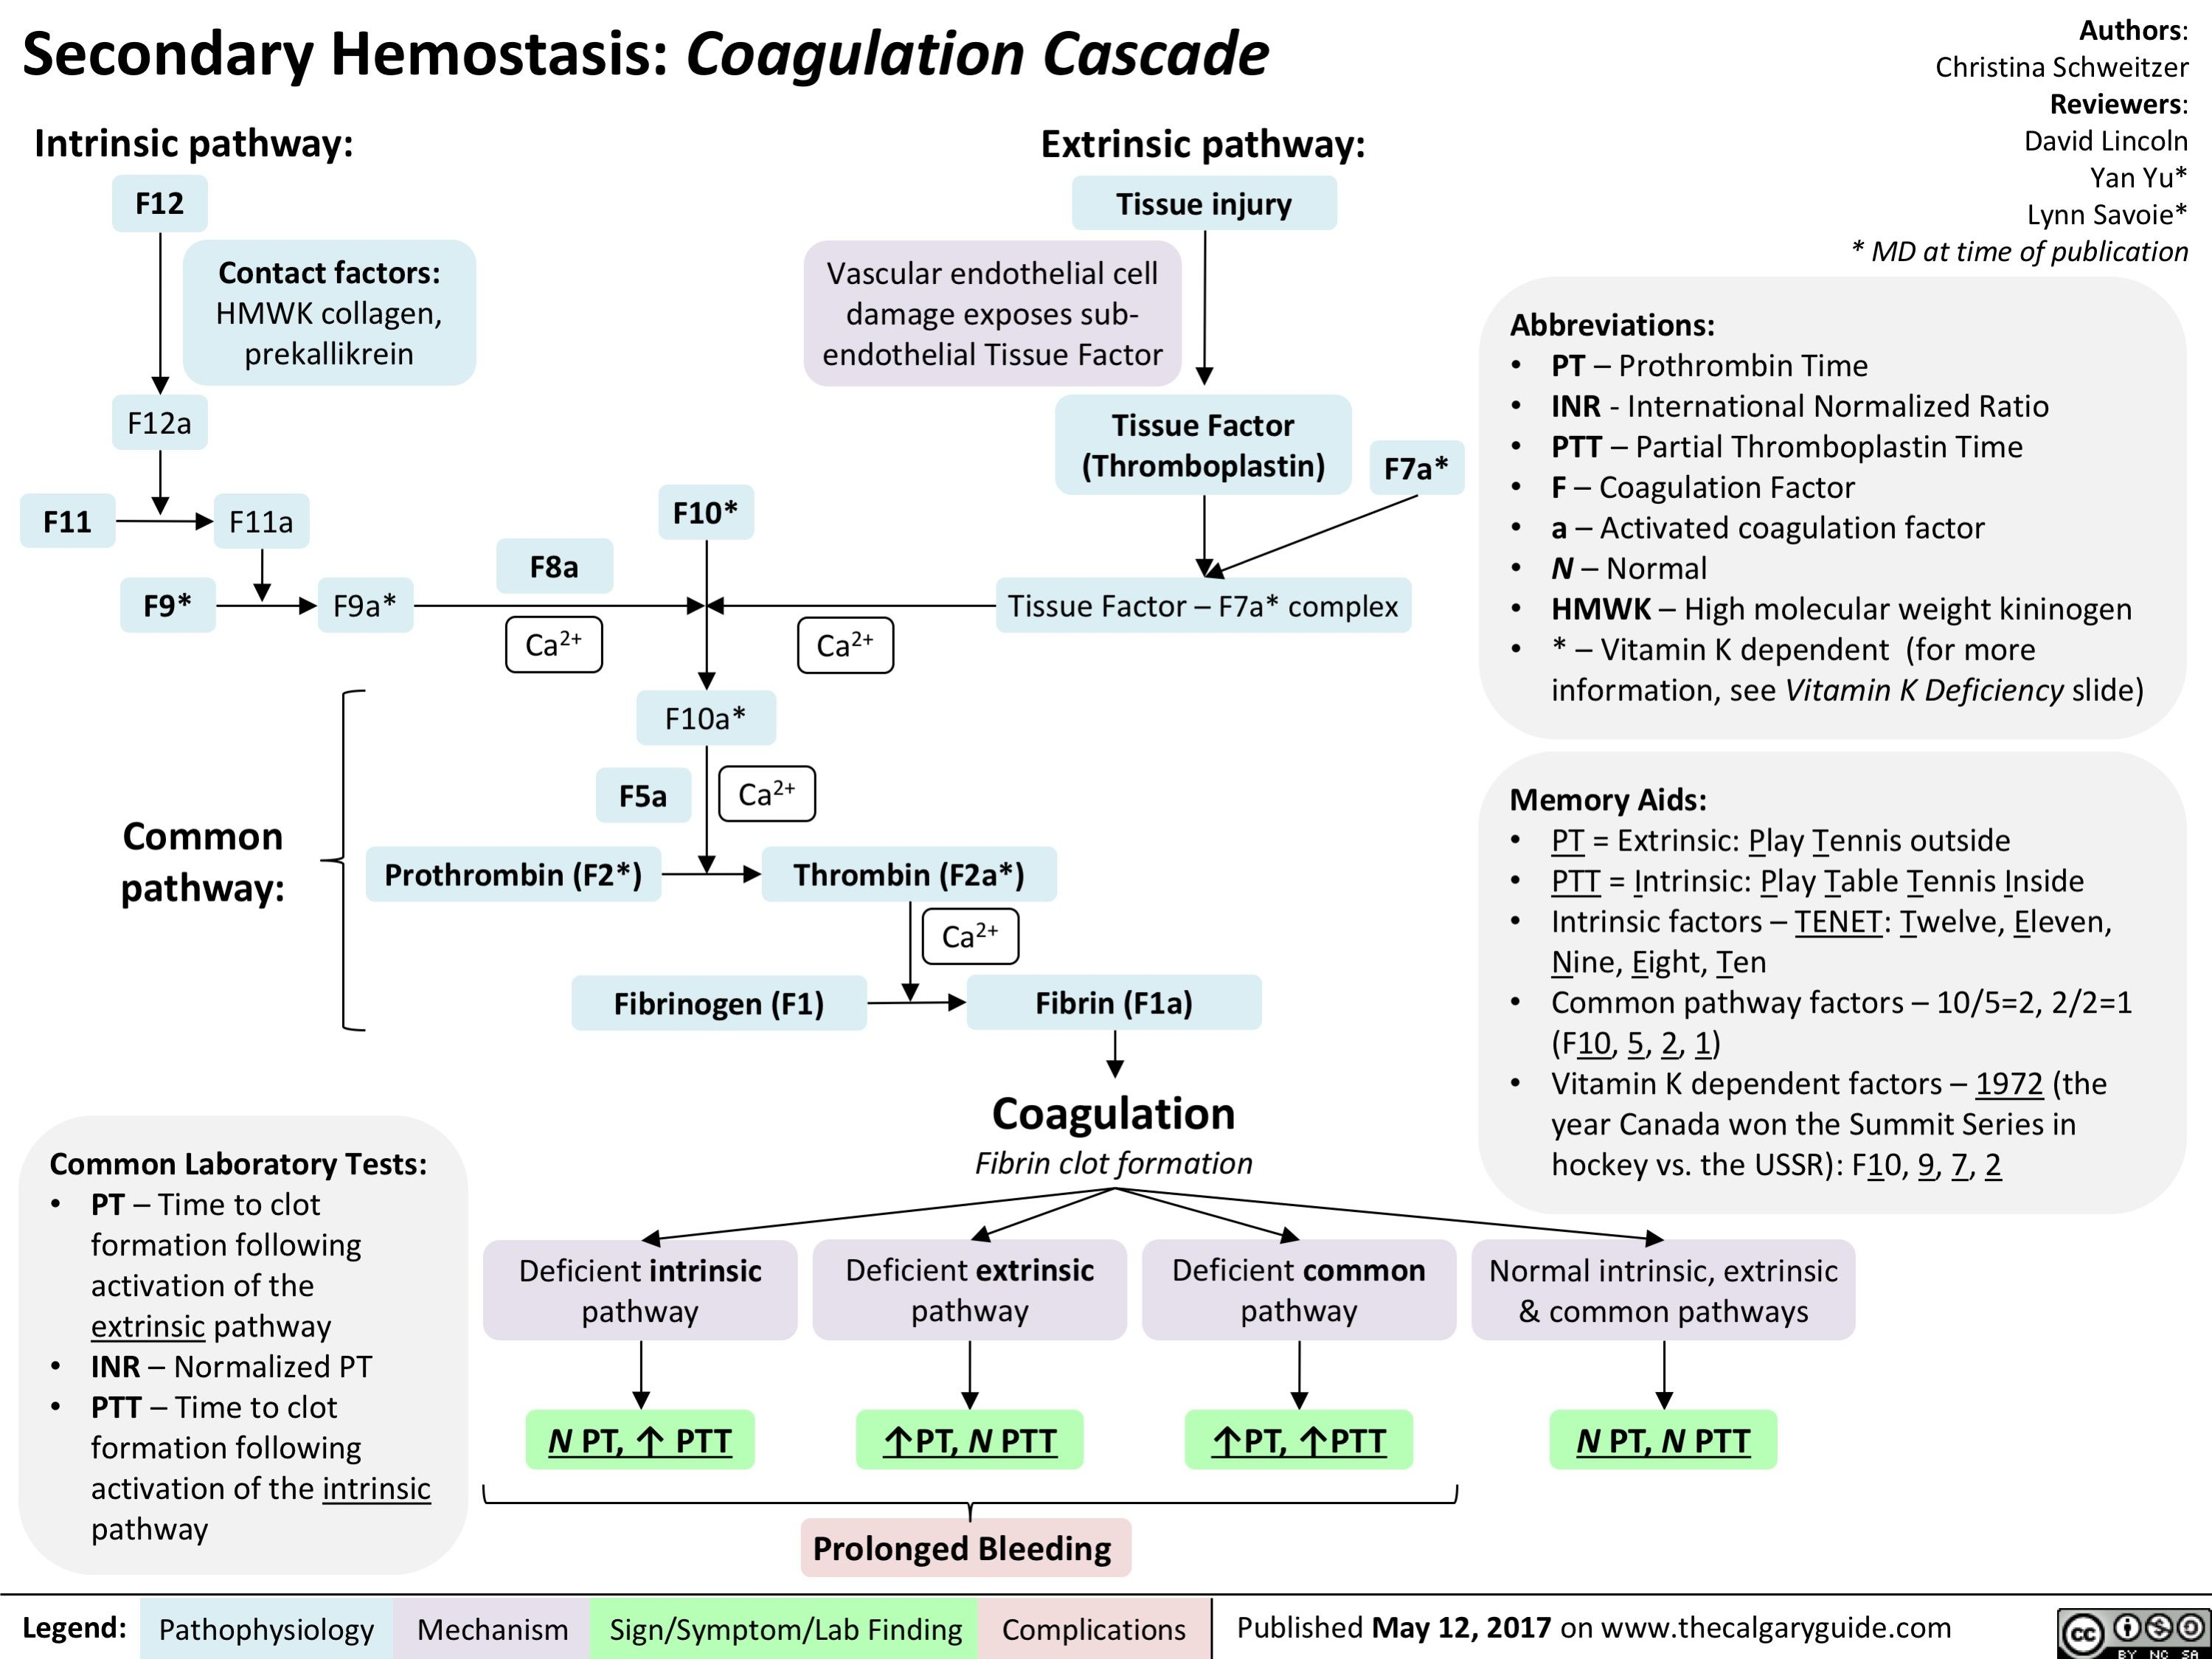 Stago at the Heart of Haemostasis